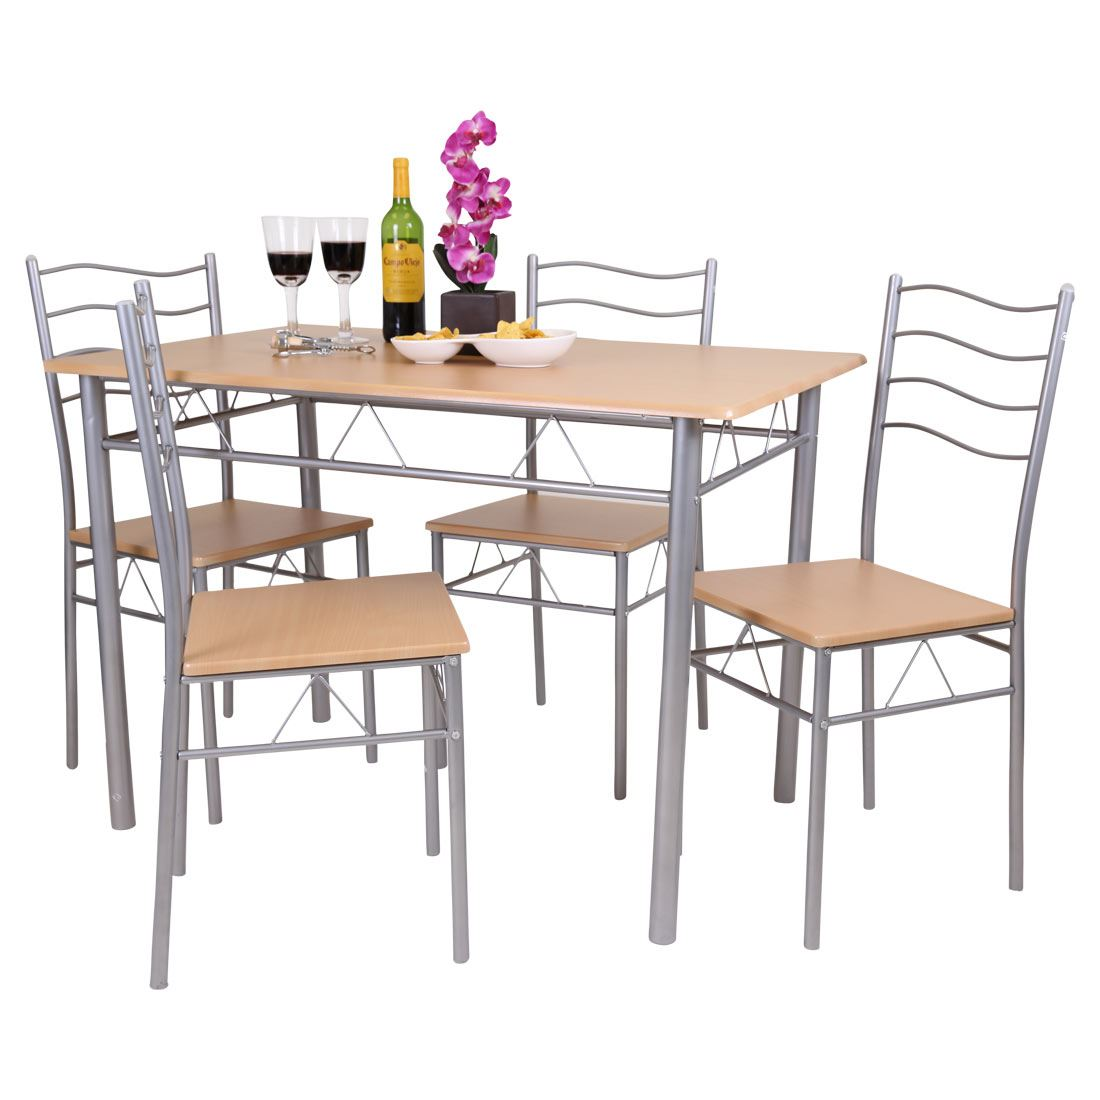 Florida 5 piece dining table and 4 chair set breakfast for 4 chair kitchen table set